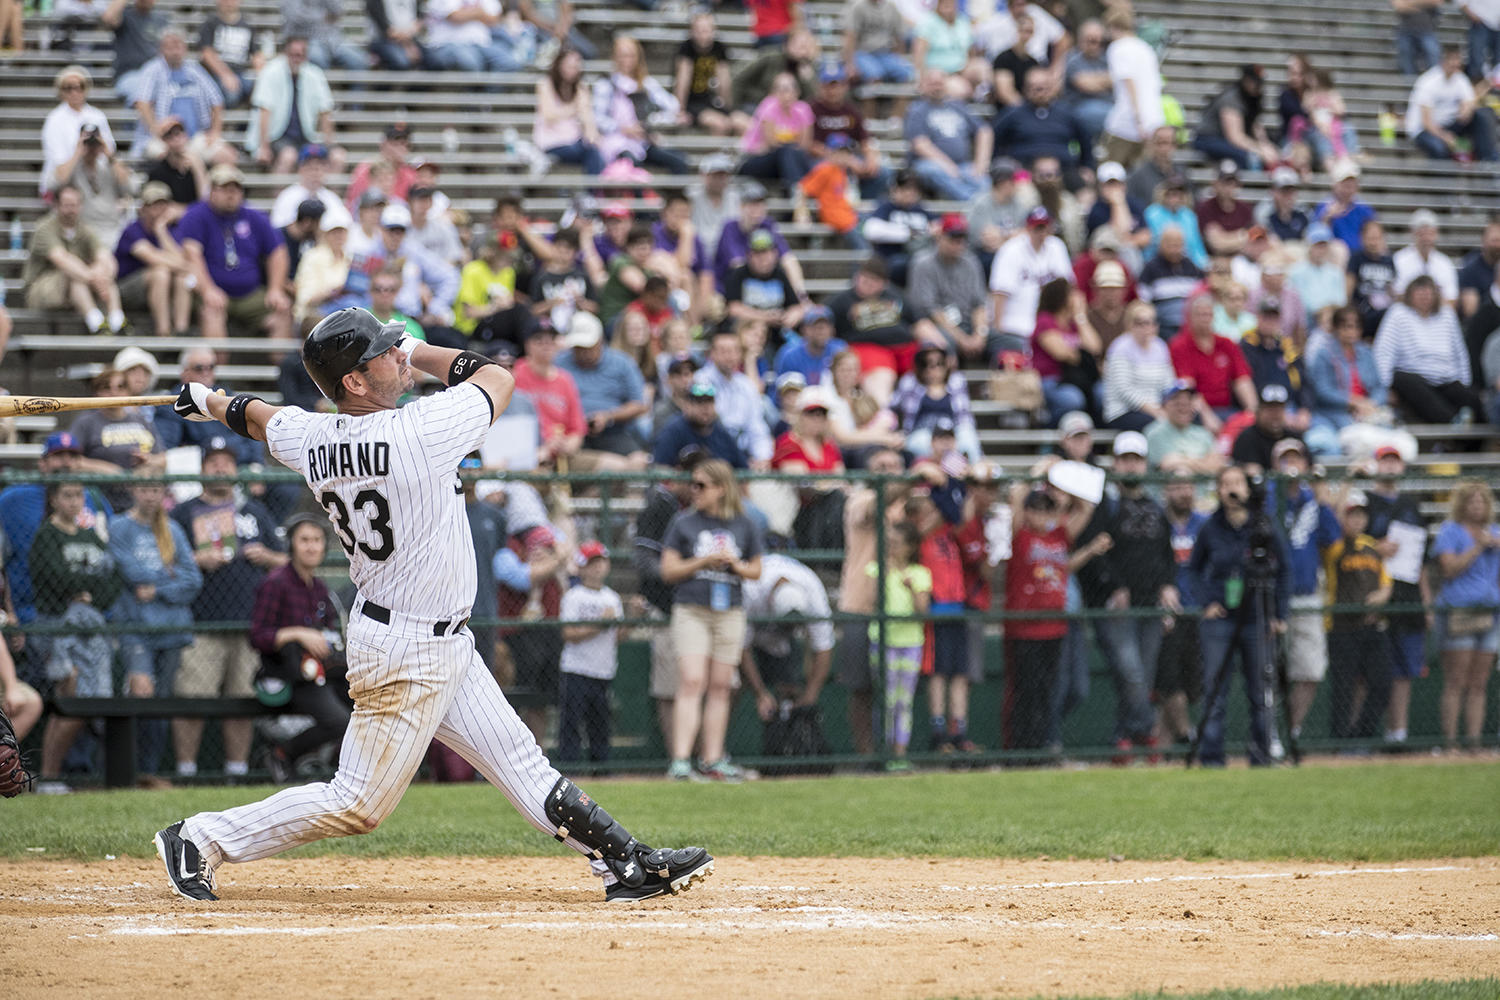 Aaron Rowand, pictured above, took home both the MVP Award and the Home Run Derby title at the 2017 Hall of Fame Classic. (Milo Stewart Jr. / National Baseball Hall of Fame and Museum)